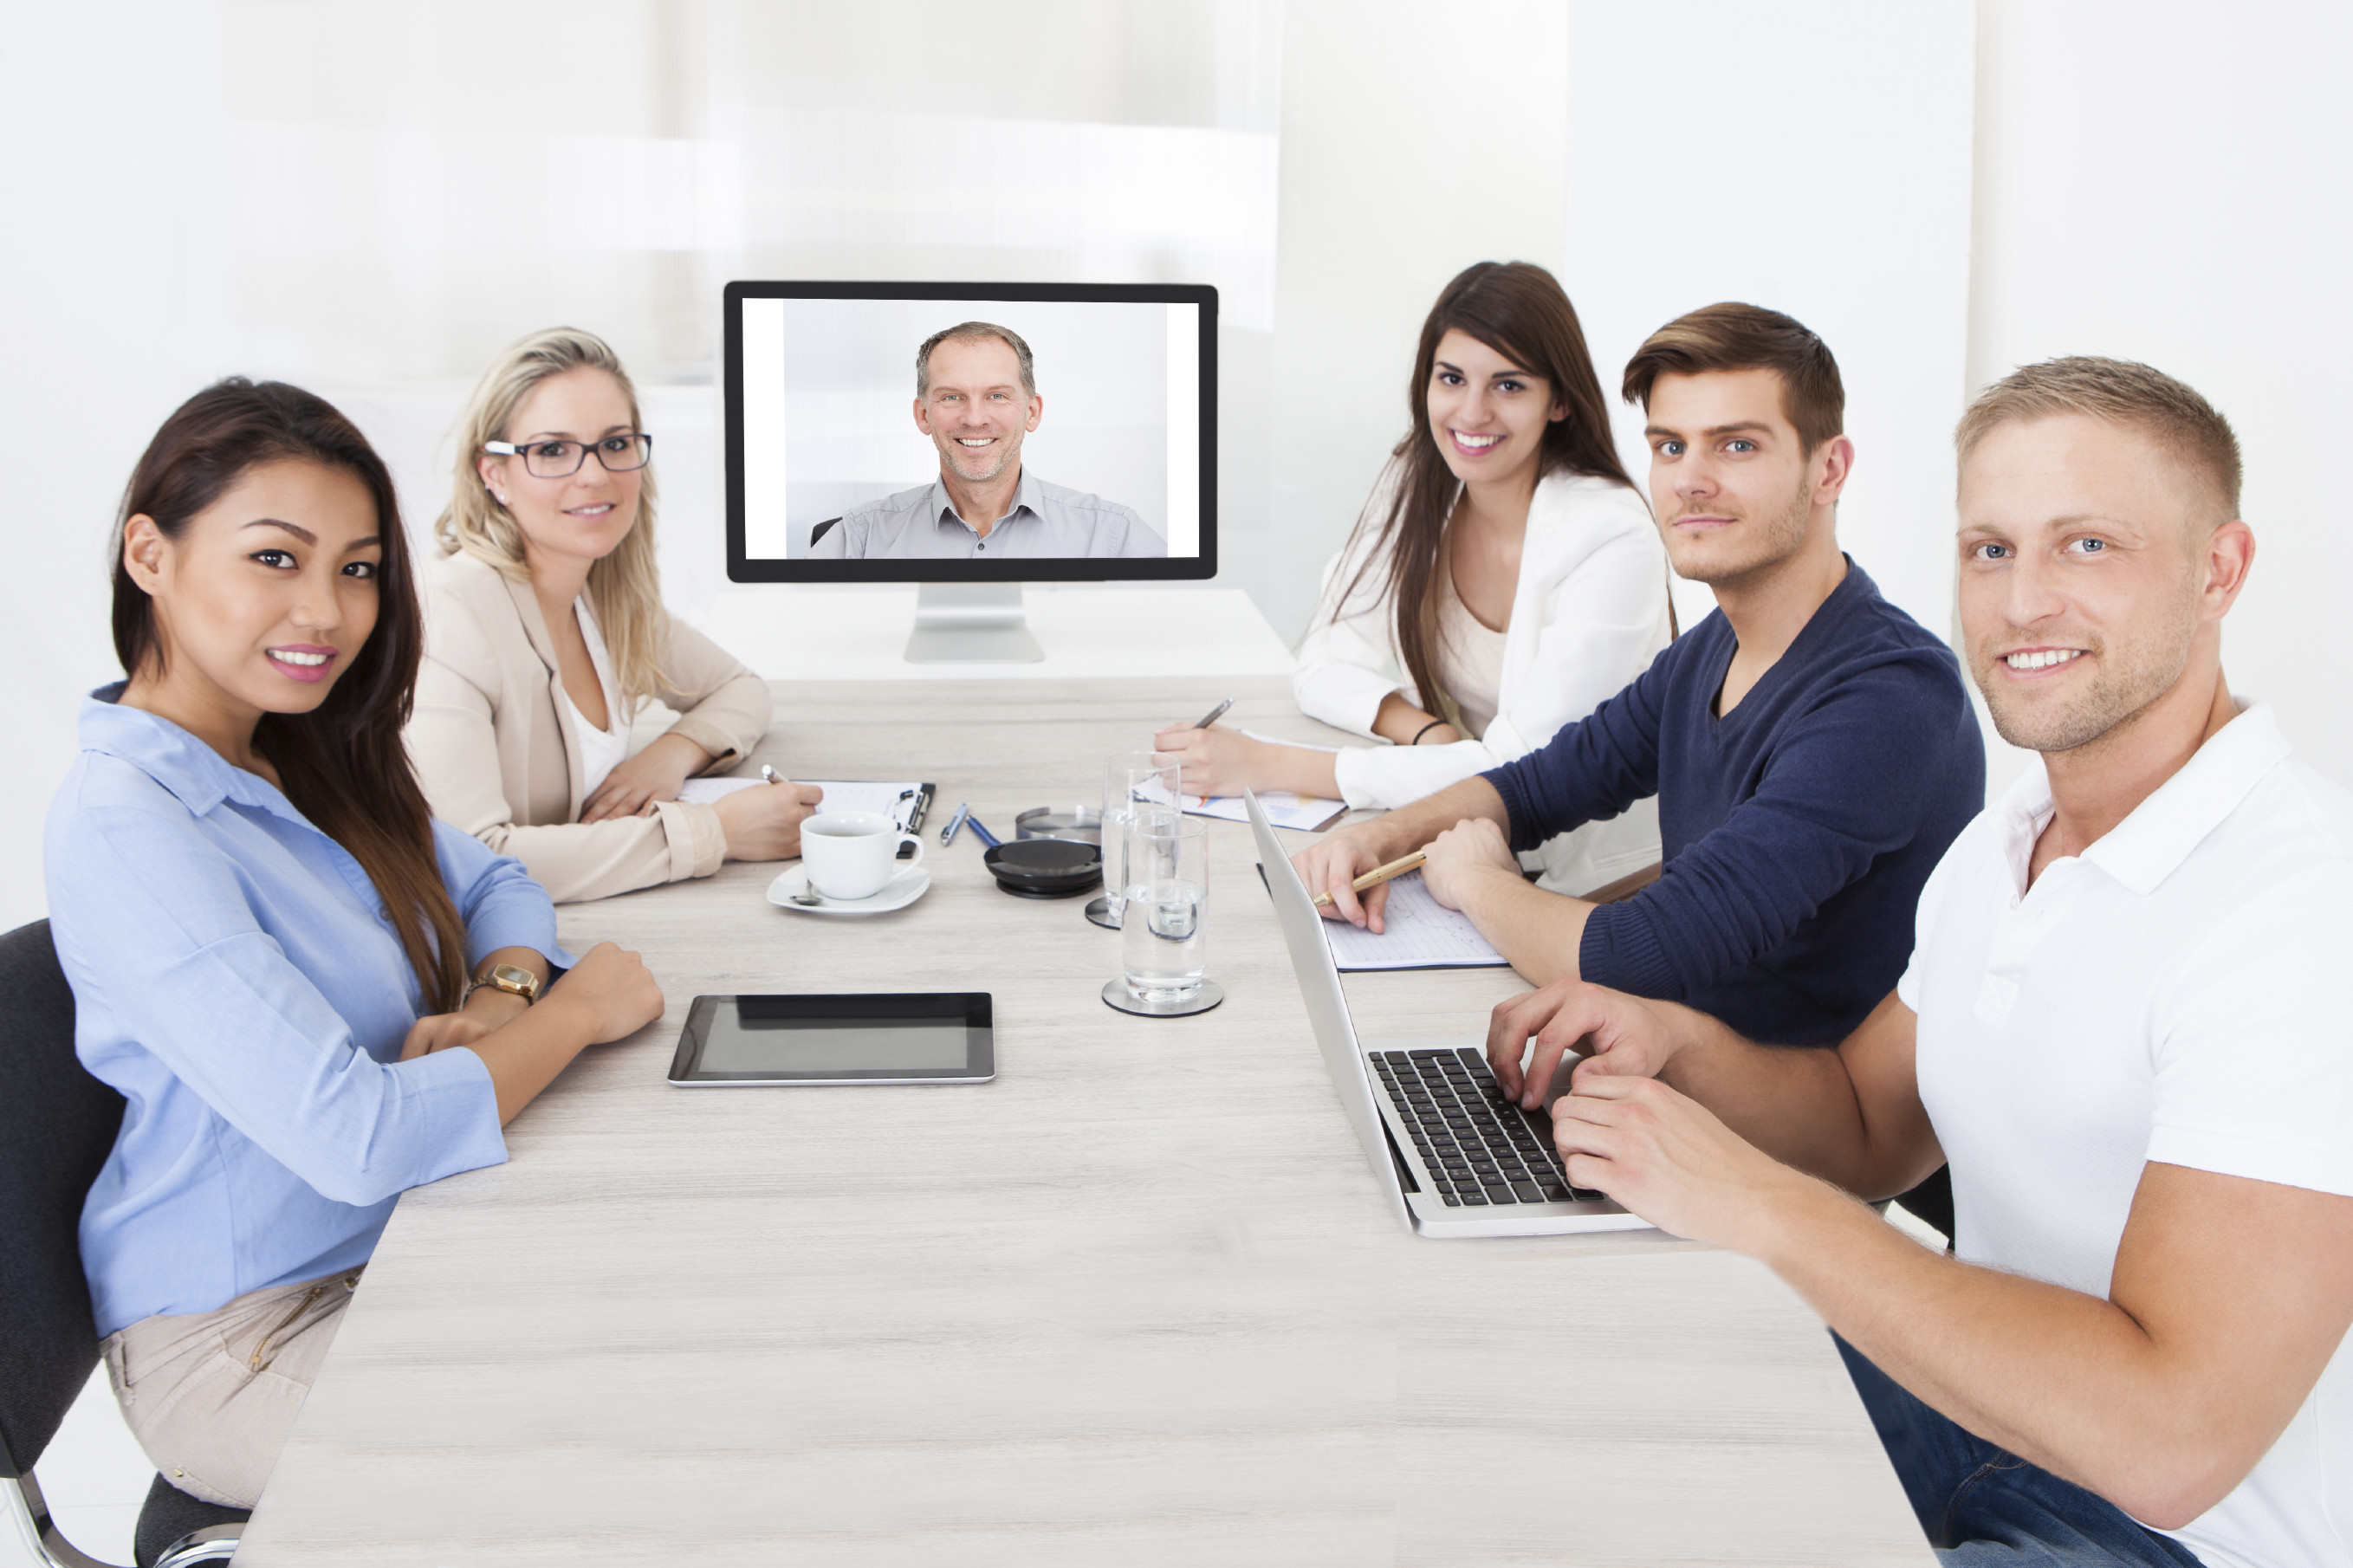 Business-Team-Attending-Video-Conference